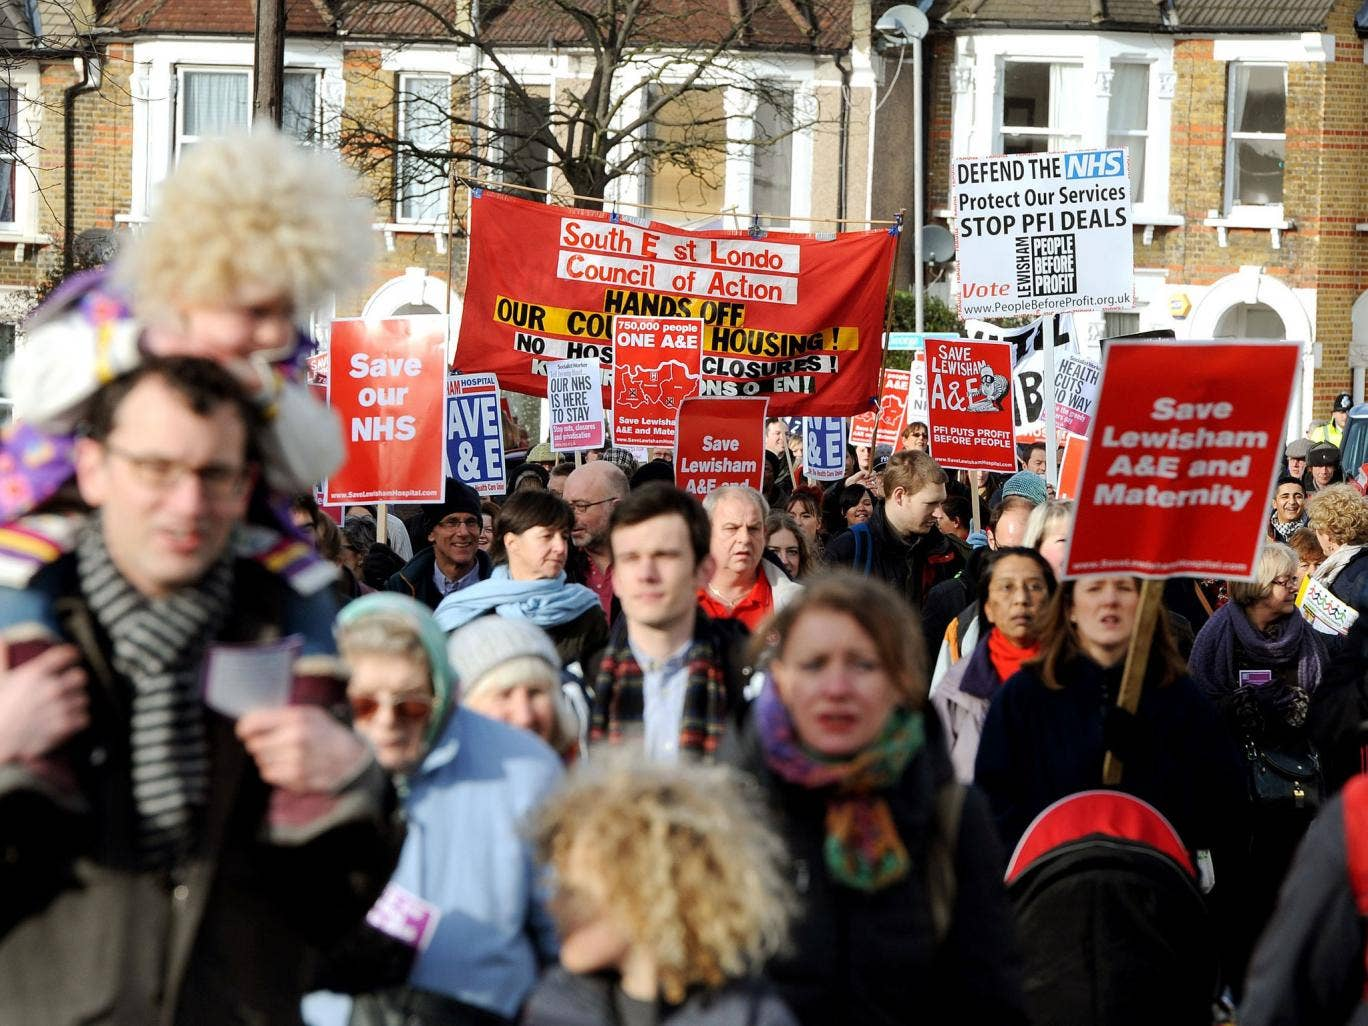 Protesters taking part in a demonstration against the closure of their local A&E and maternity services at Lewisham Hospital in south-east London